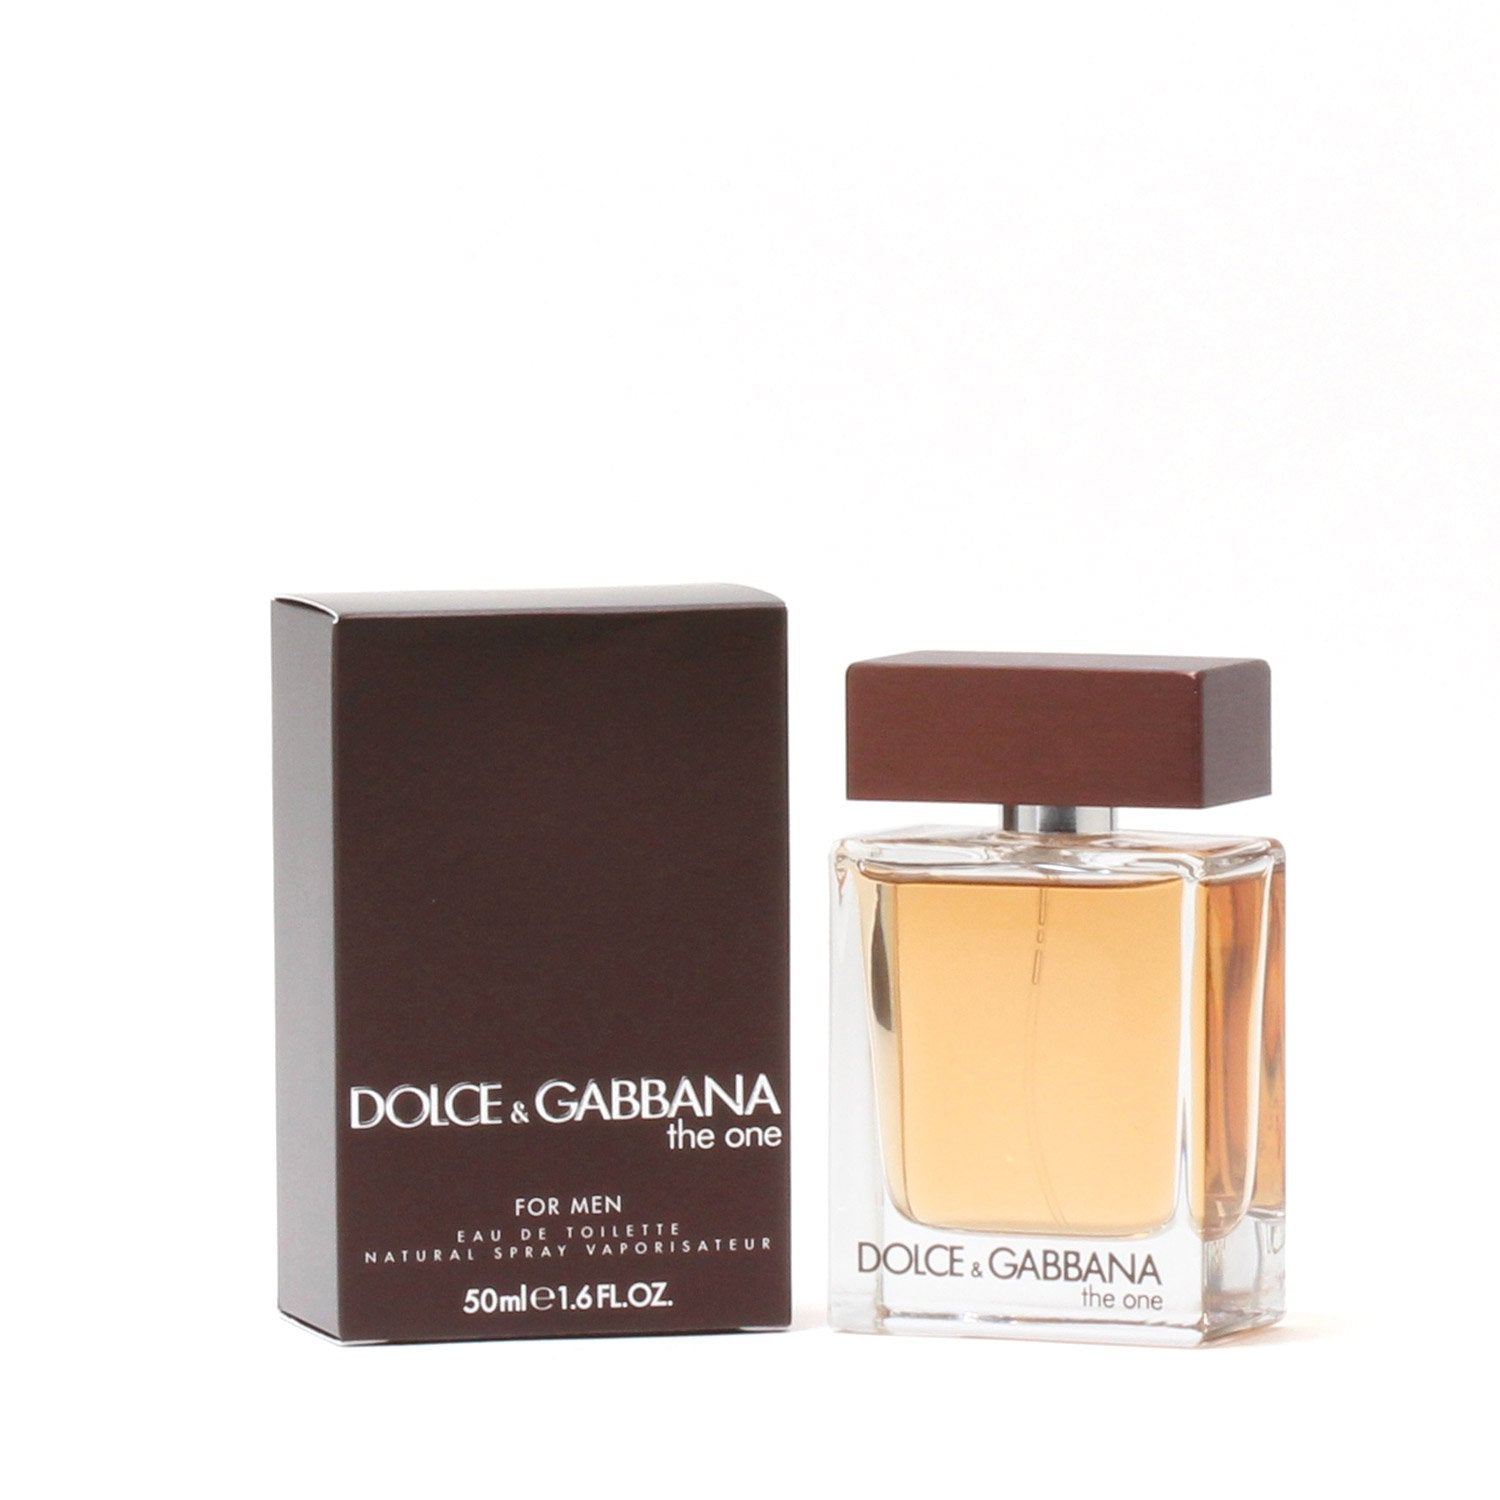 Cologne - DOLCE & GABBANA THE ONE FOR MEN - EAU DE TOILETTE SPRAY